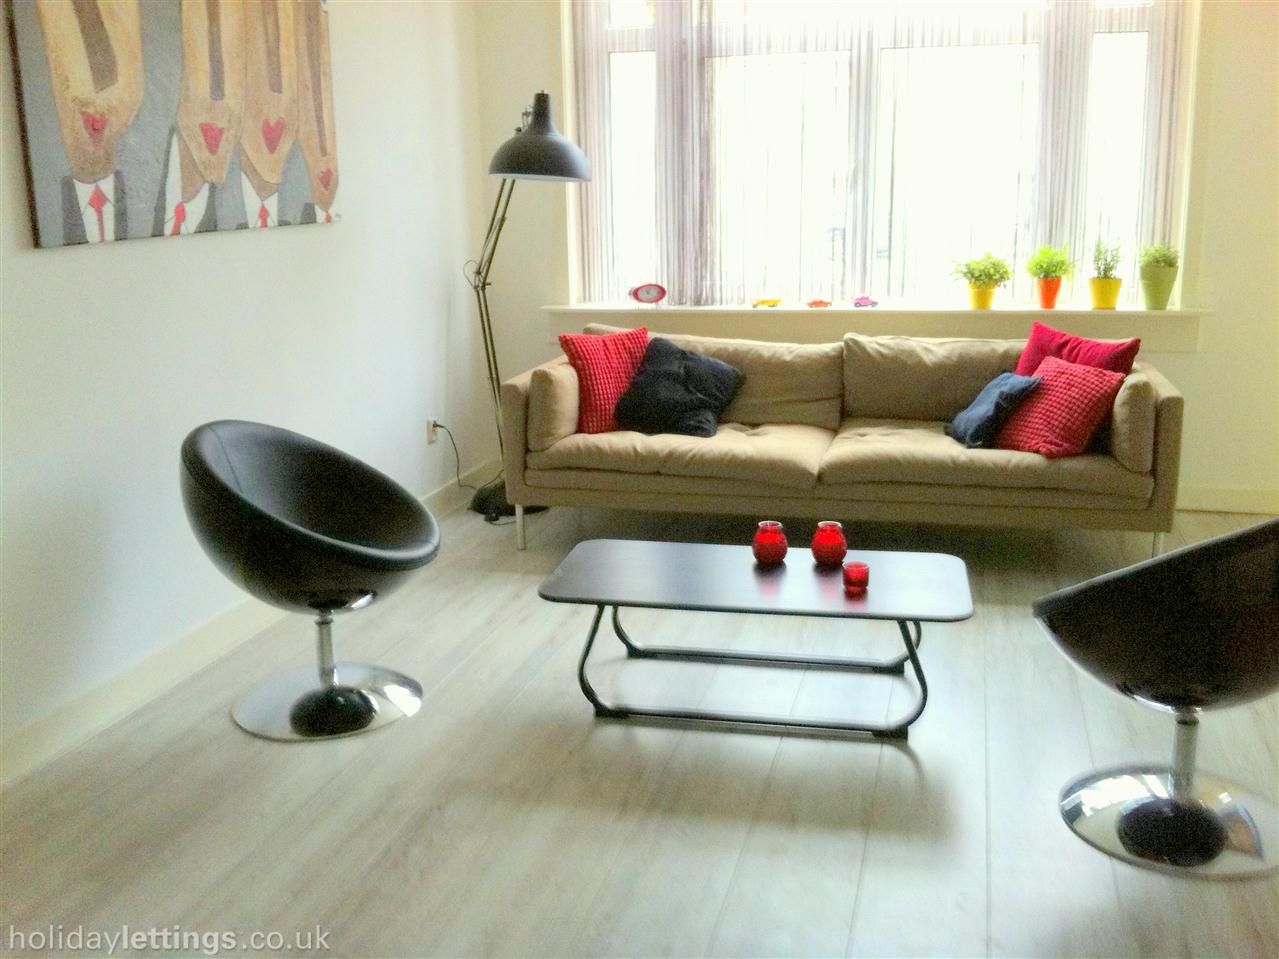 2 bedroom apartment in Amsterdam to rent from £800 pw ...